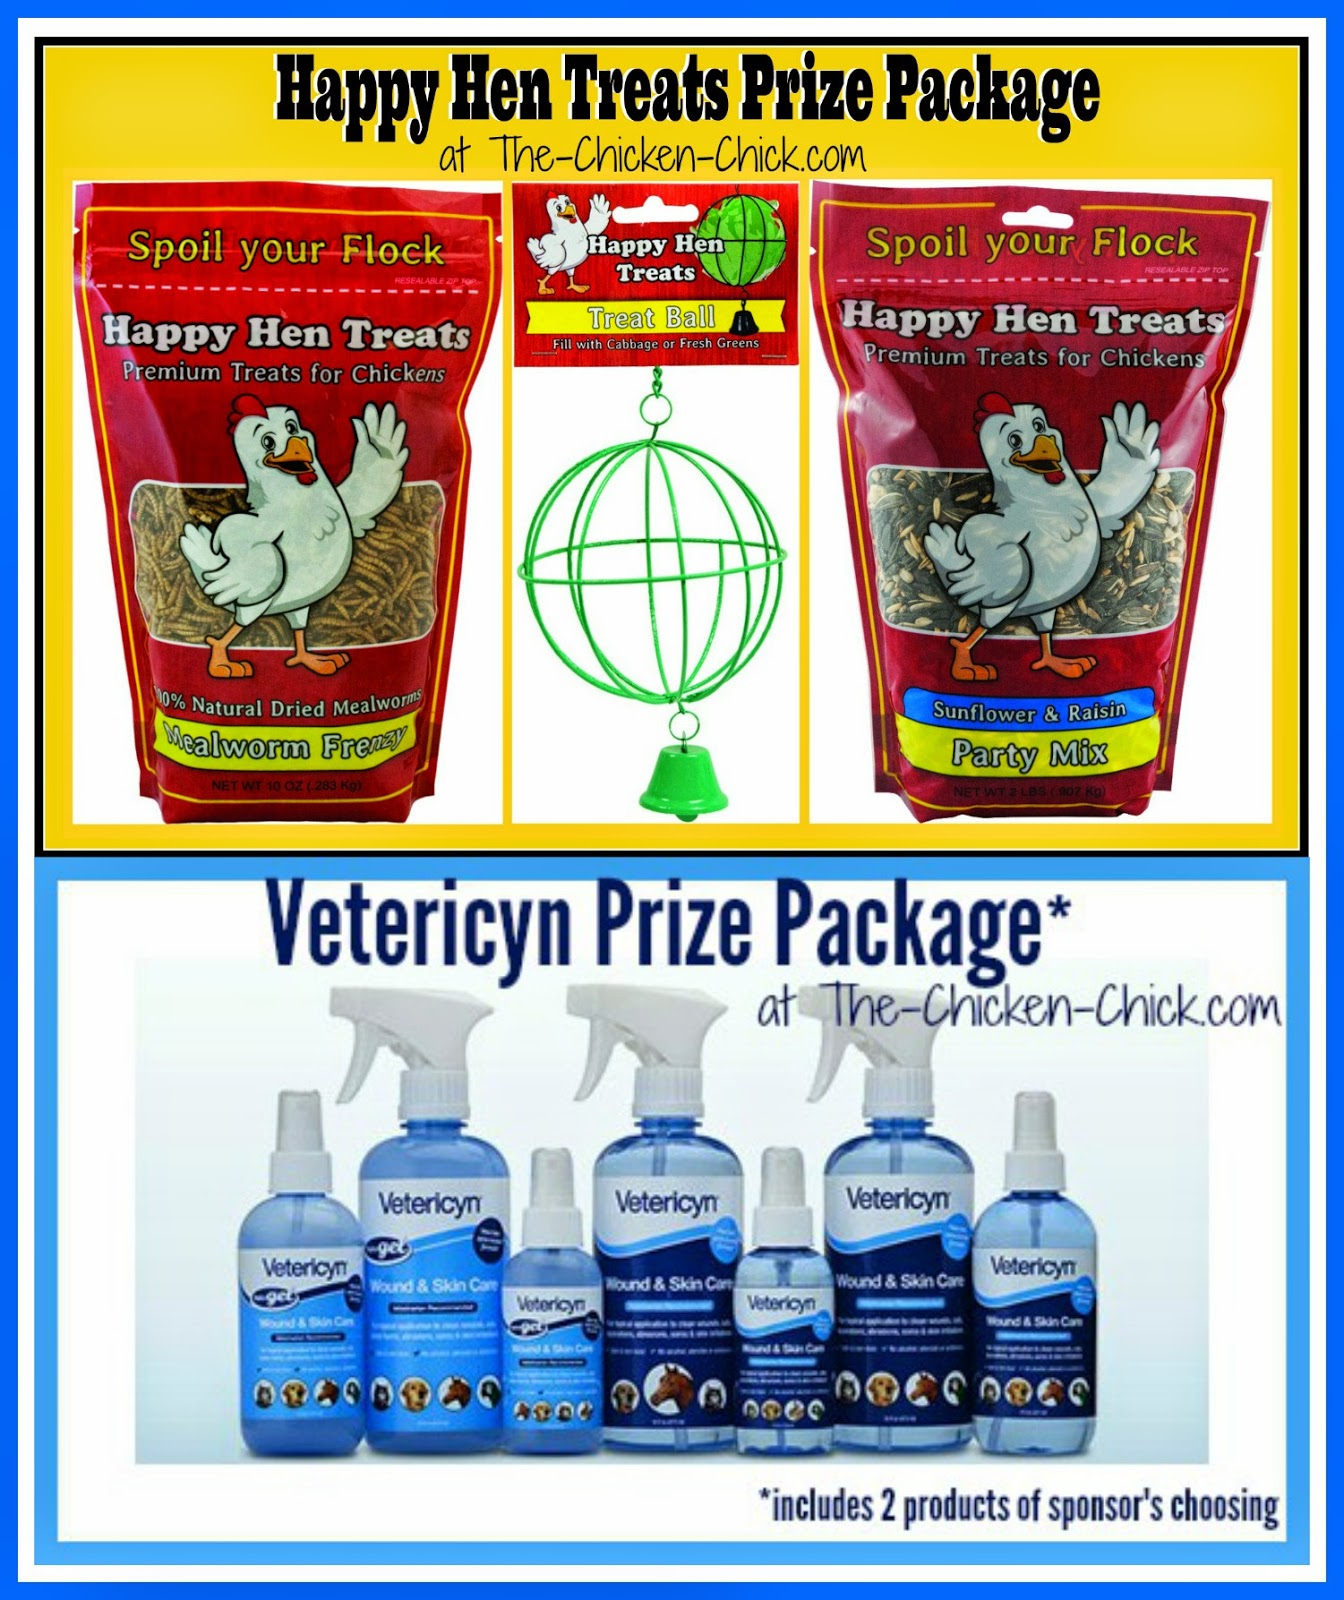 Happy Hen Treats Prize Package Giveaway and Vetericyn Prize Package Giveaway